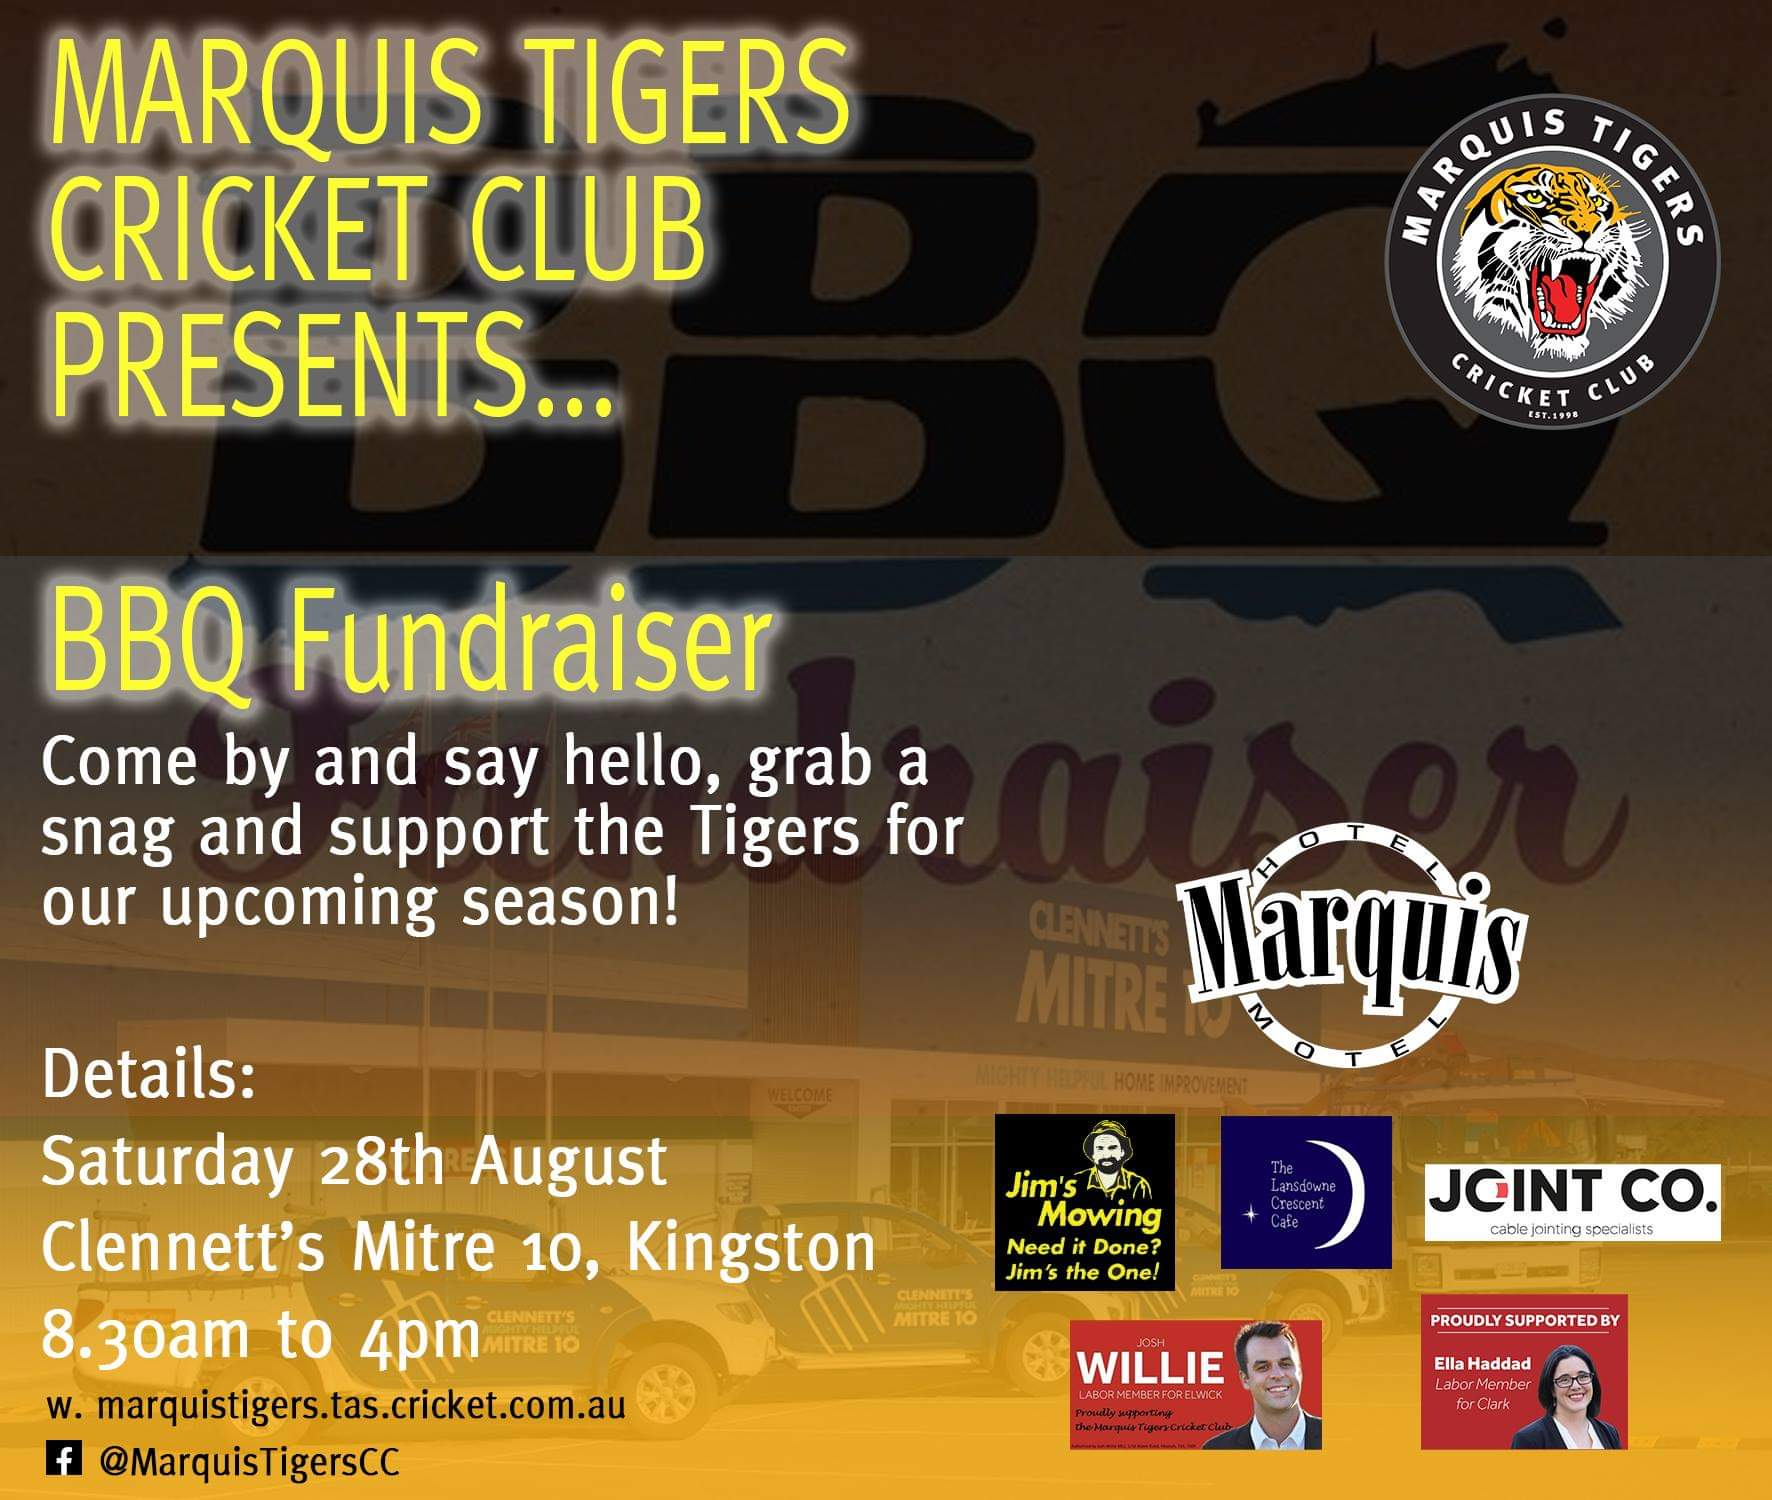 Marquis Tigers Cricket Club at Clennetts Mitre 10